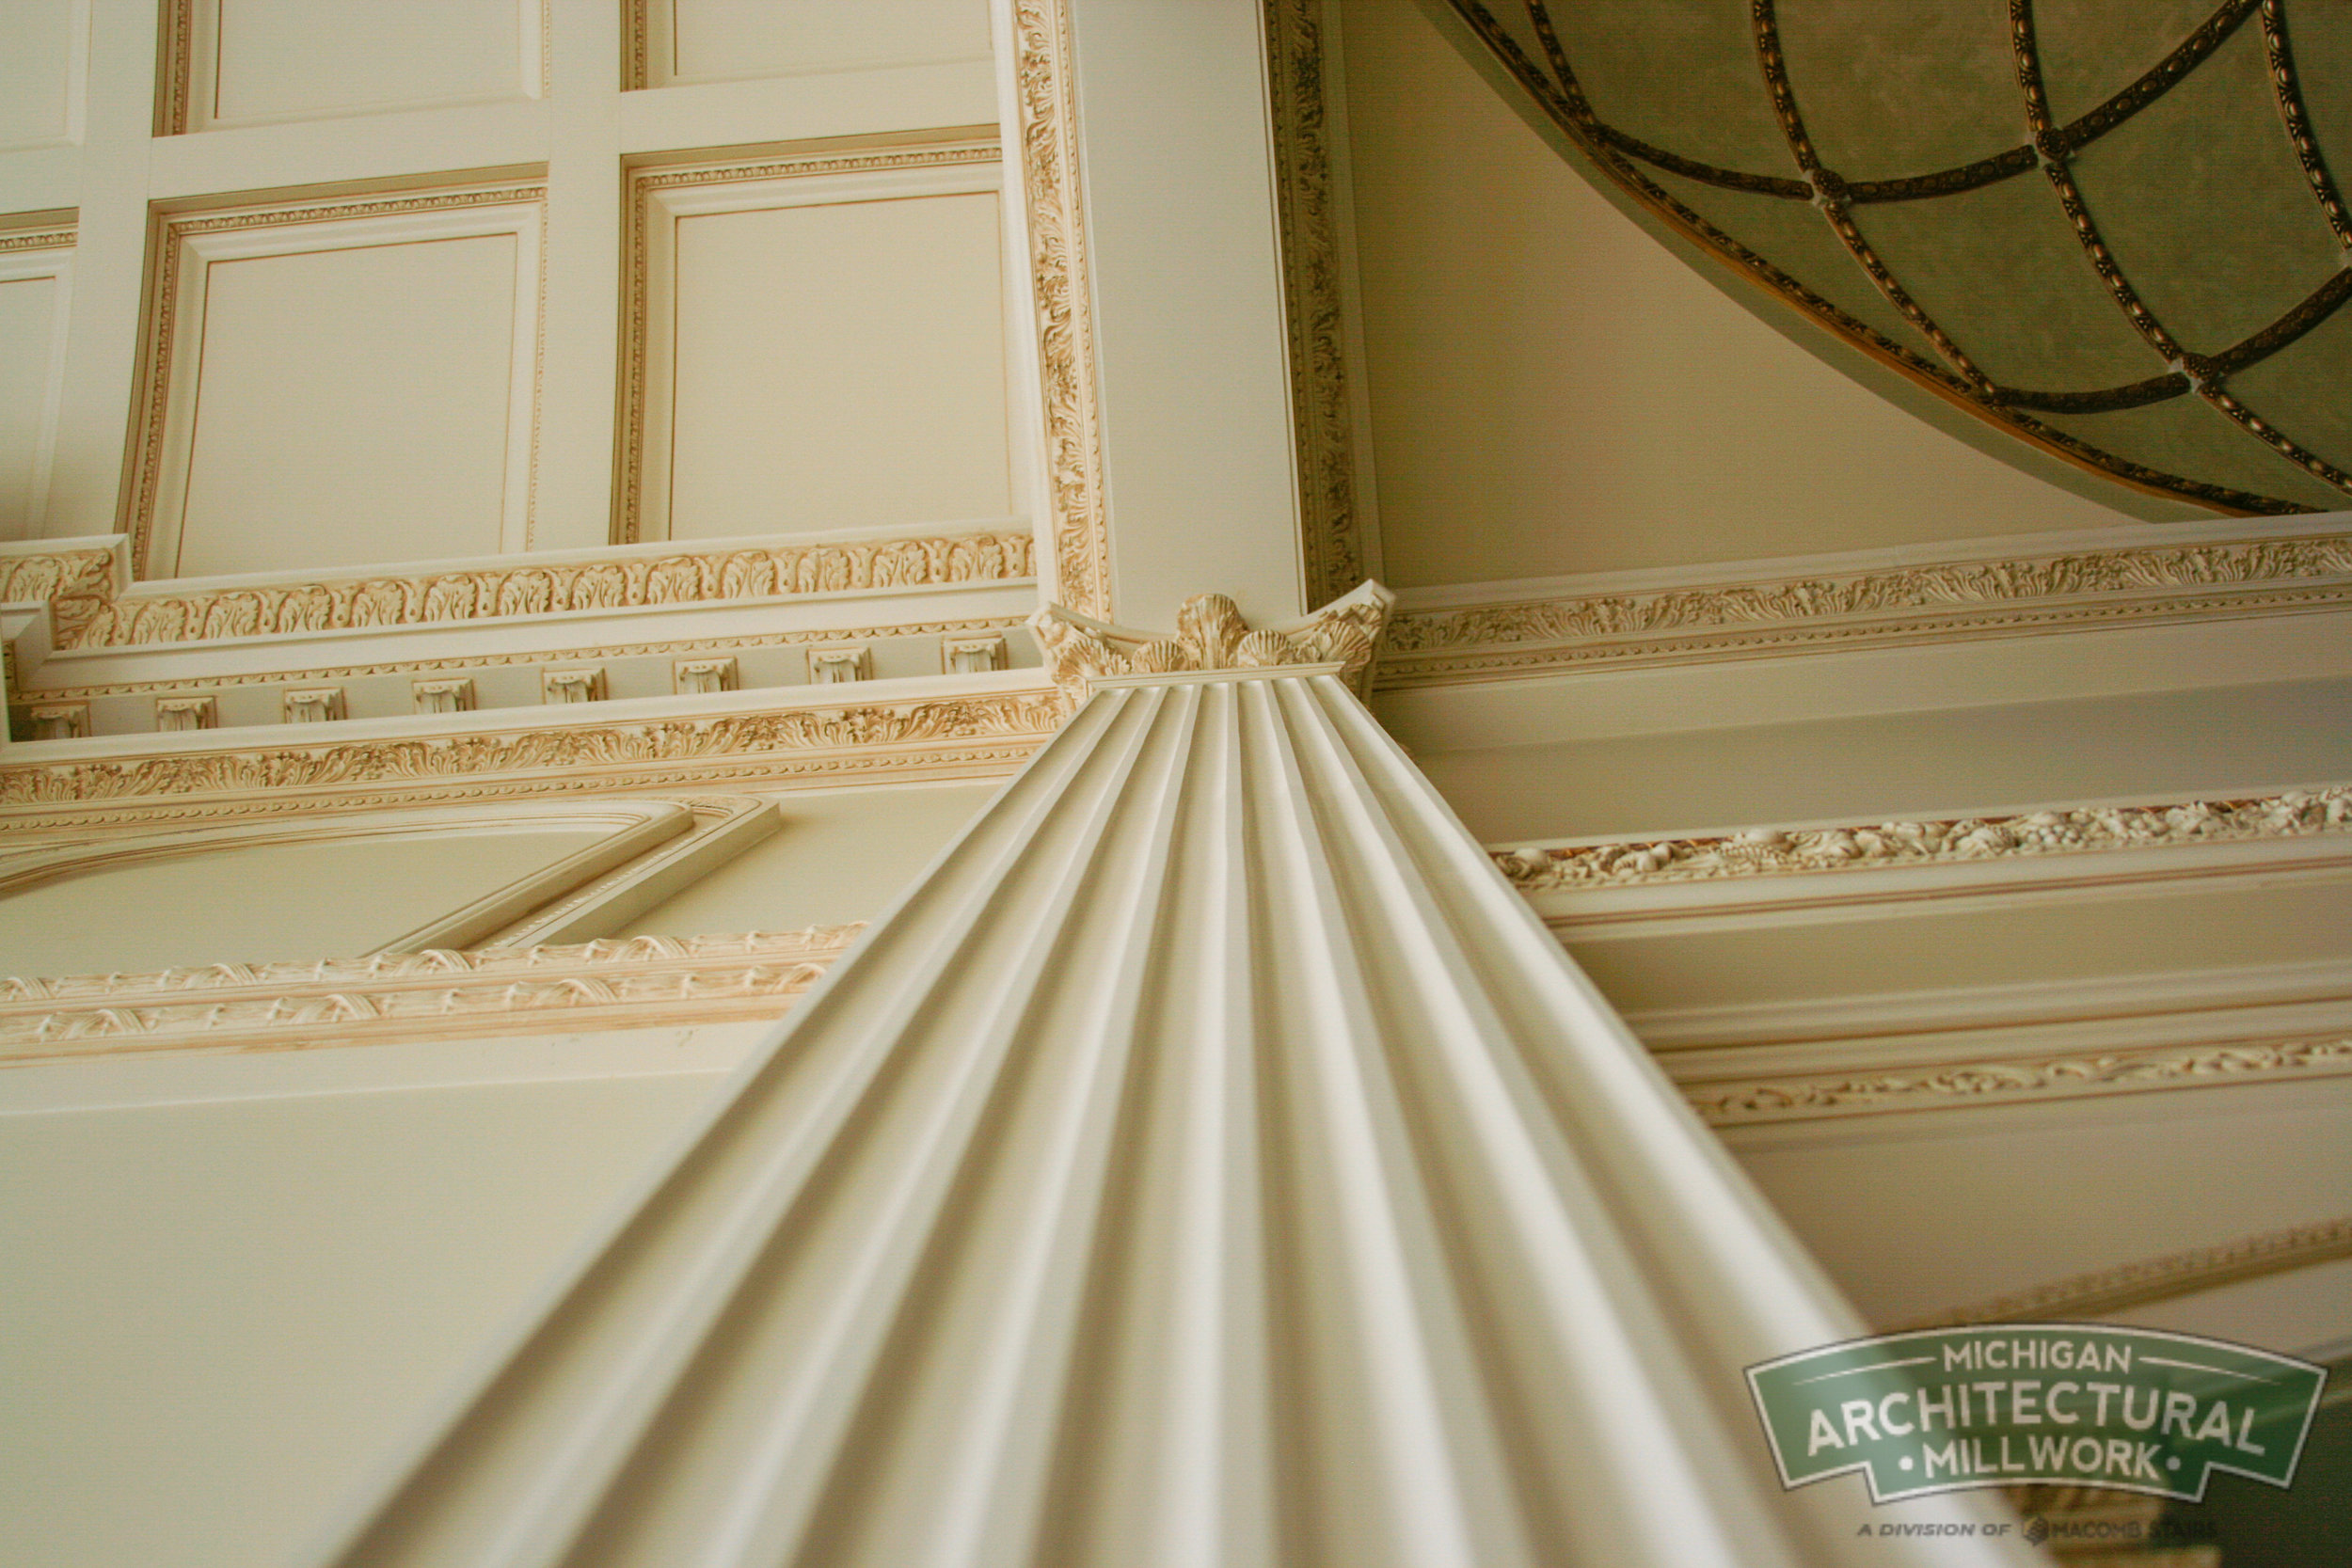 Michigan Architectural Millwork- Moulding and Millwork Photo-128.jpg